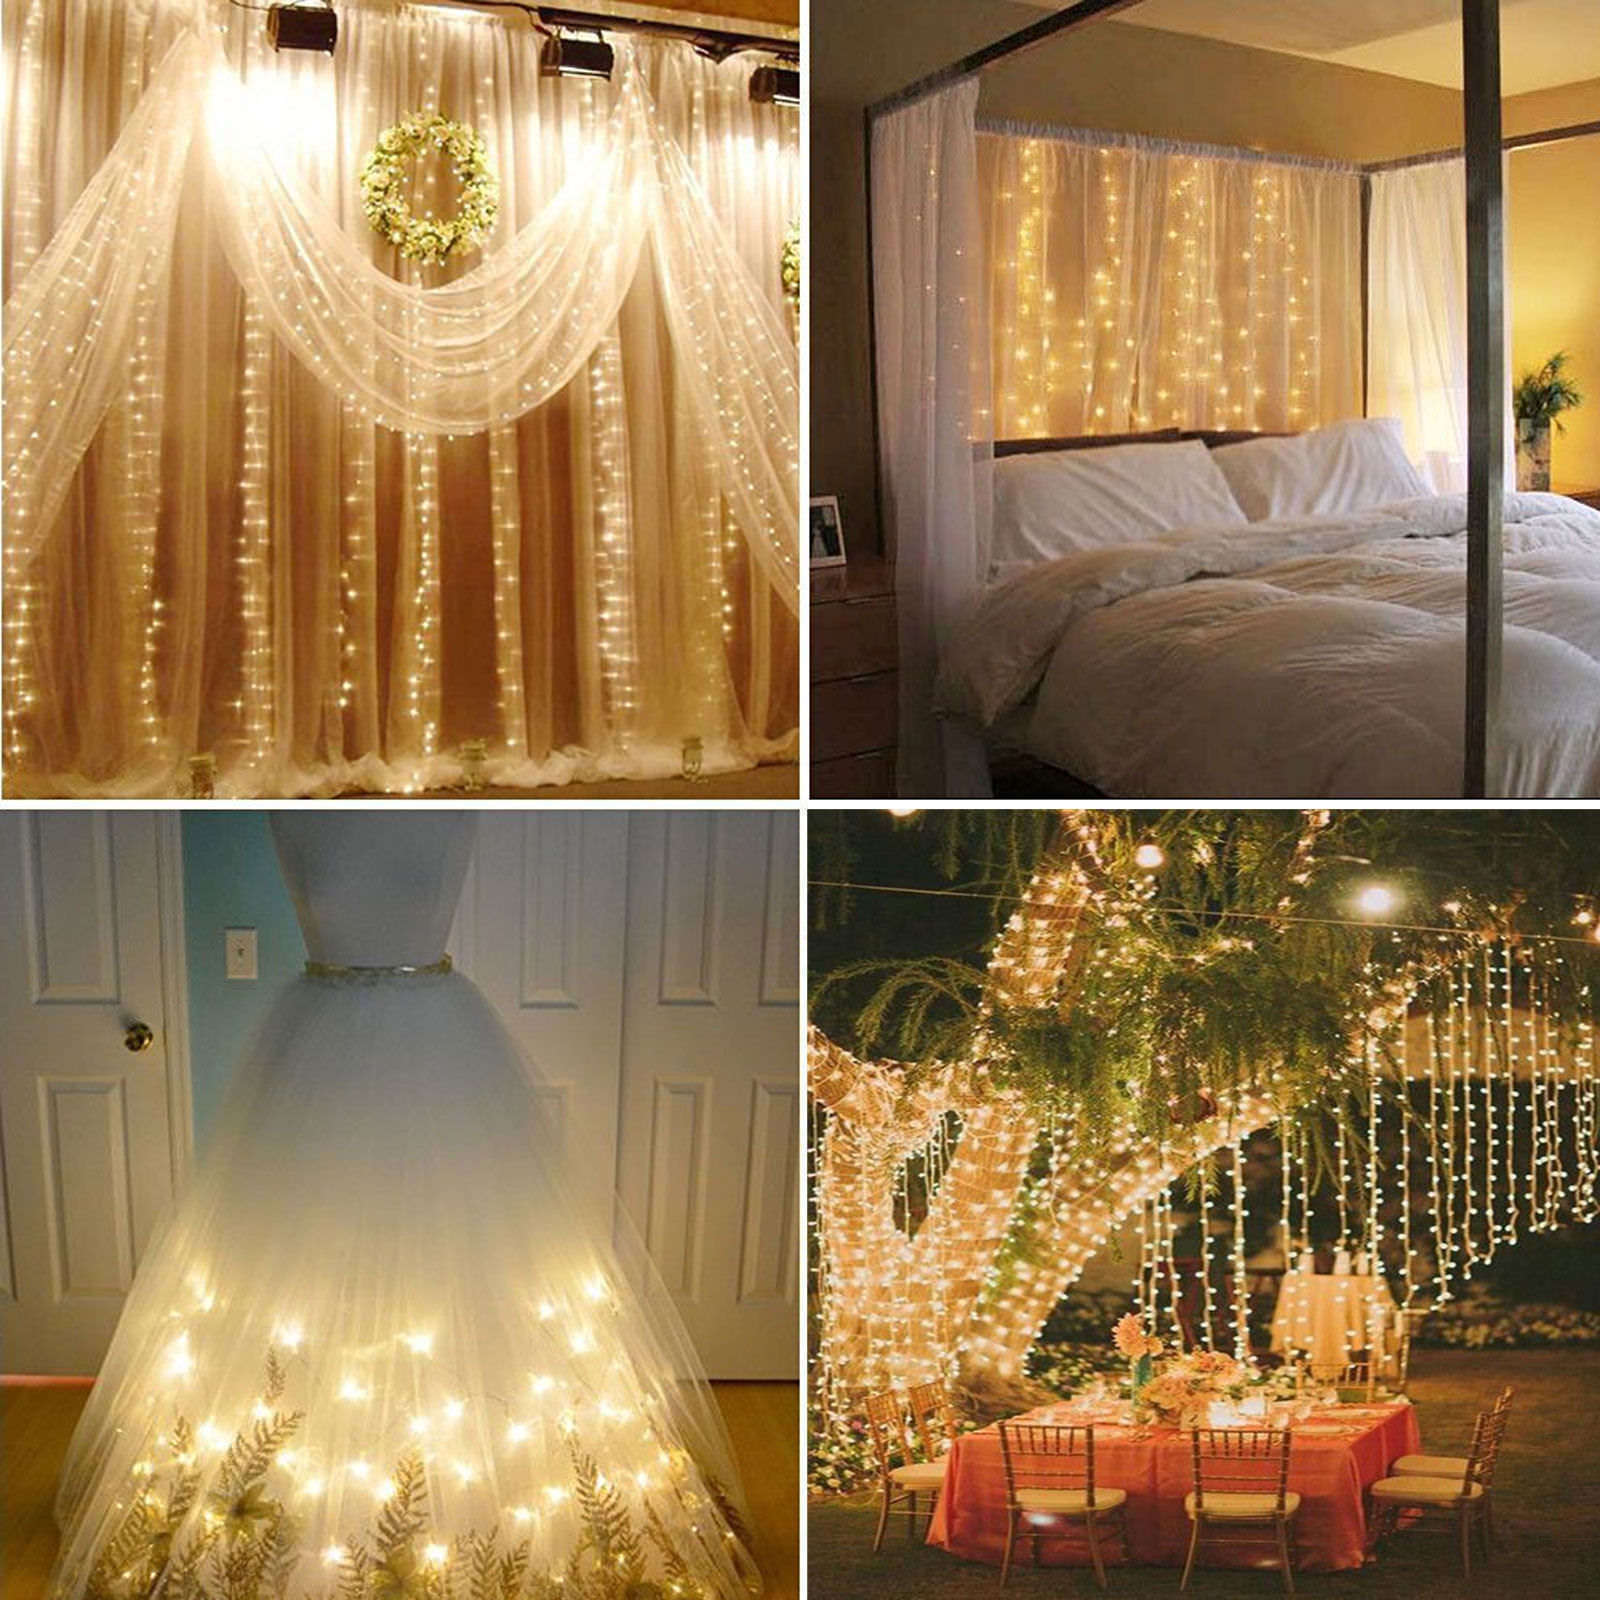 9 8ft X 9 8ft 304 Led Led Curtain Lights Wateproof 8 Modes Fairy String Lights Warm Cool Muticolor White Light String Fairy Lamp Shiny Christmas Xmas Wedding Curtain Decoration For Room Apartment Walmart Com